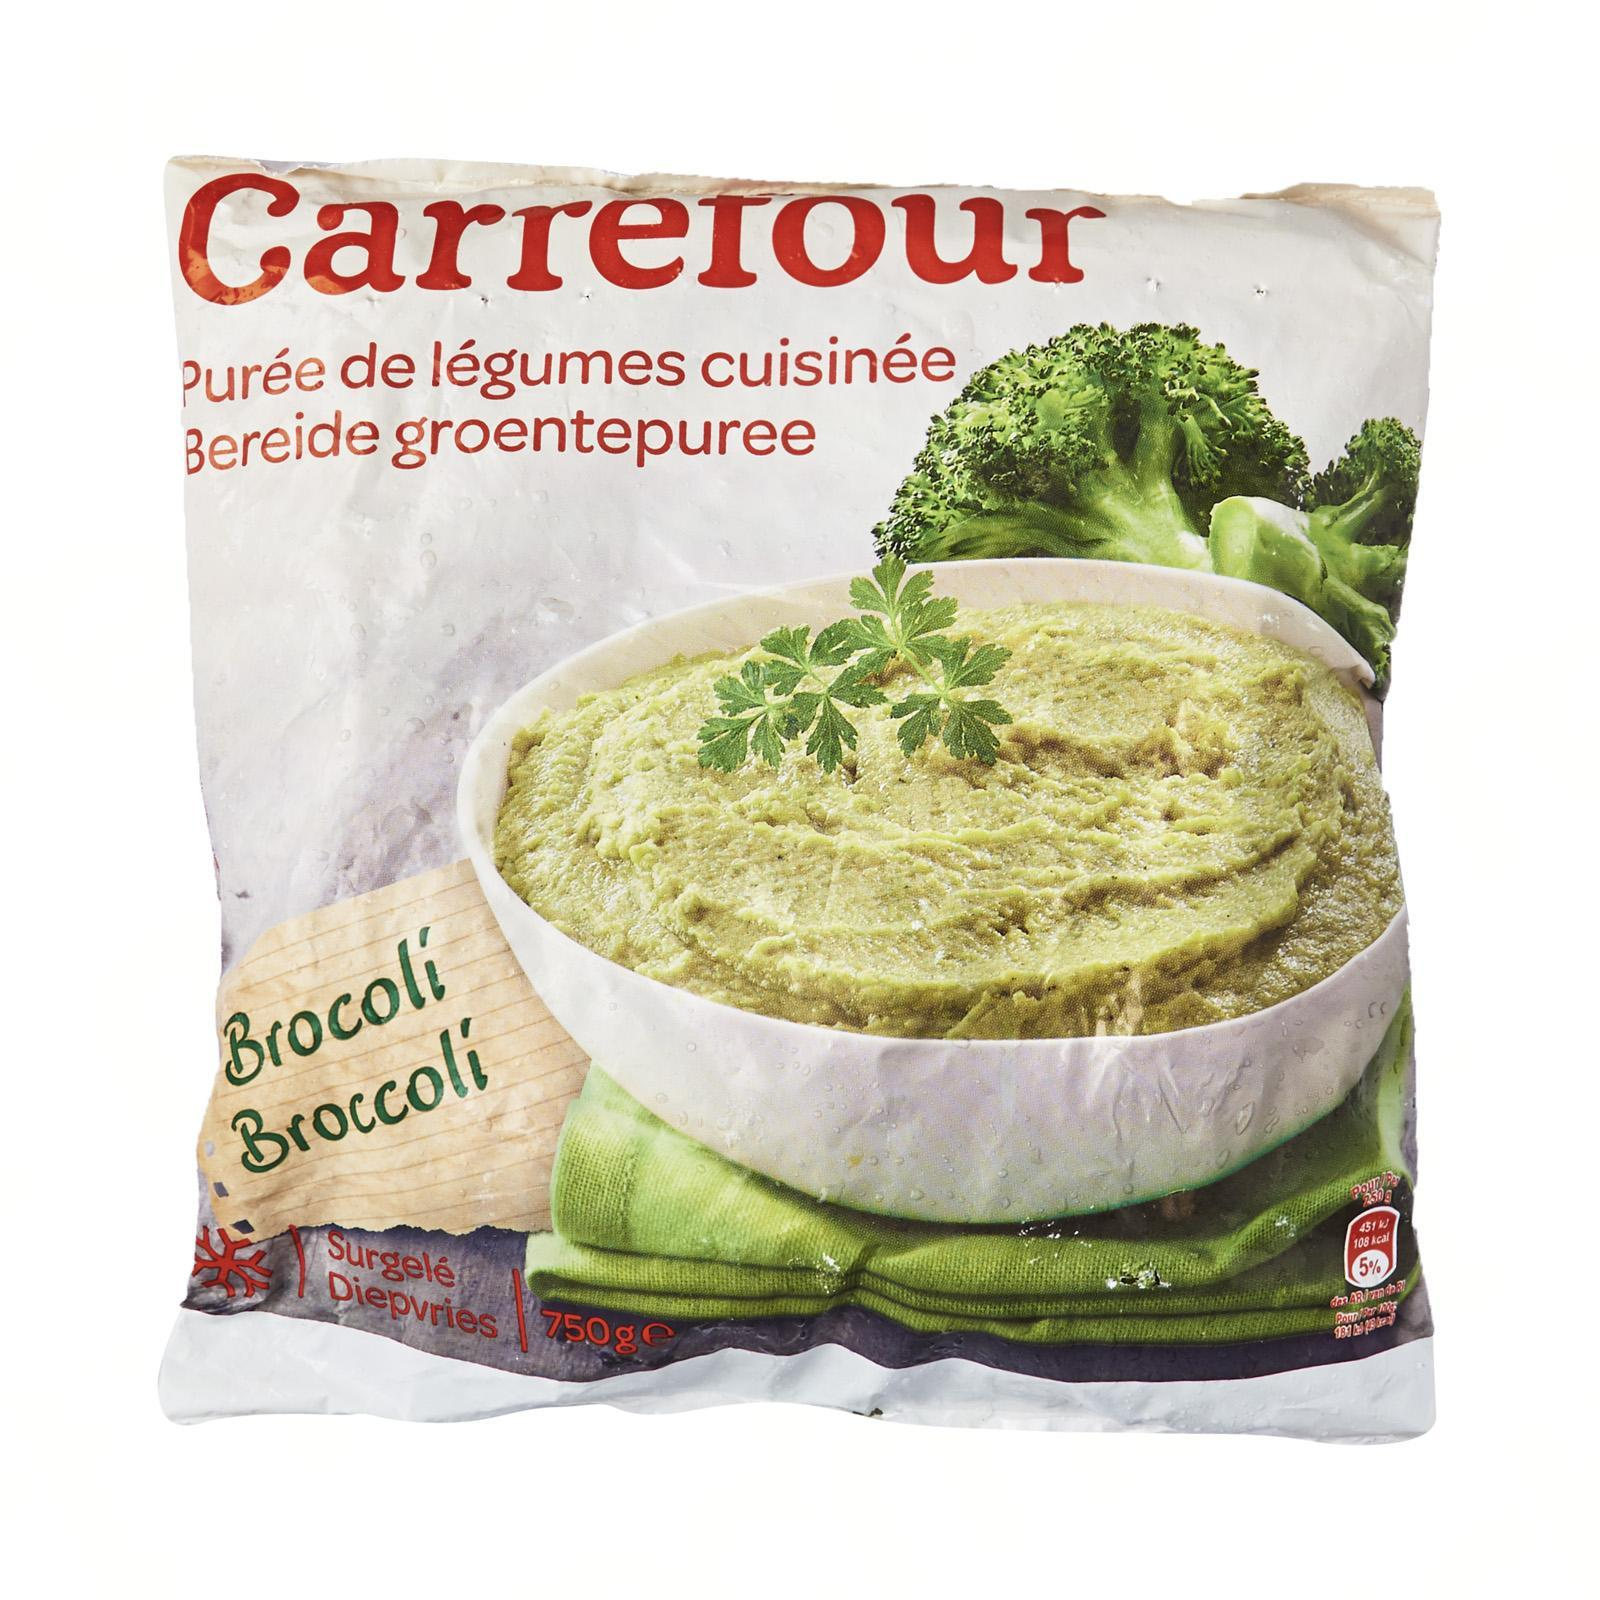 Carrefour Mashed Brocolis - Frozen - By Le Petit Depot By Redmart.